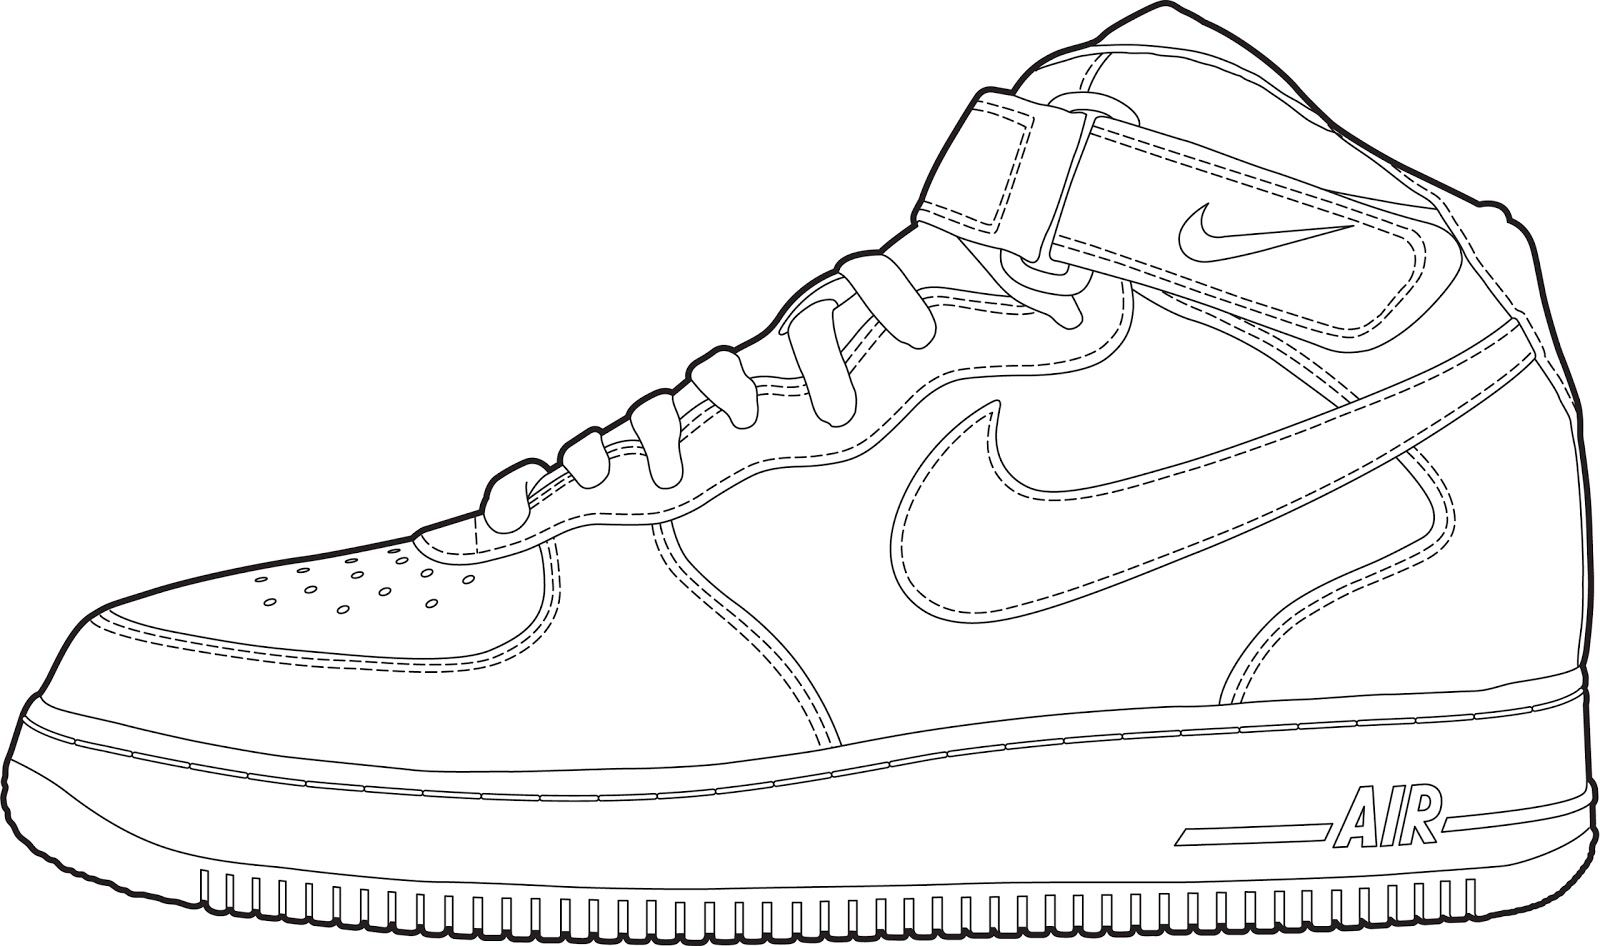 Astronaut Air Force 1 Nike Shoe - Pics about space